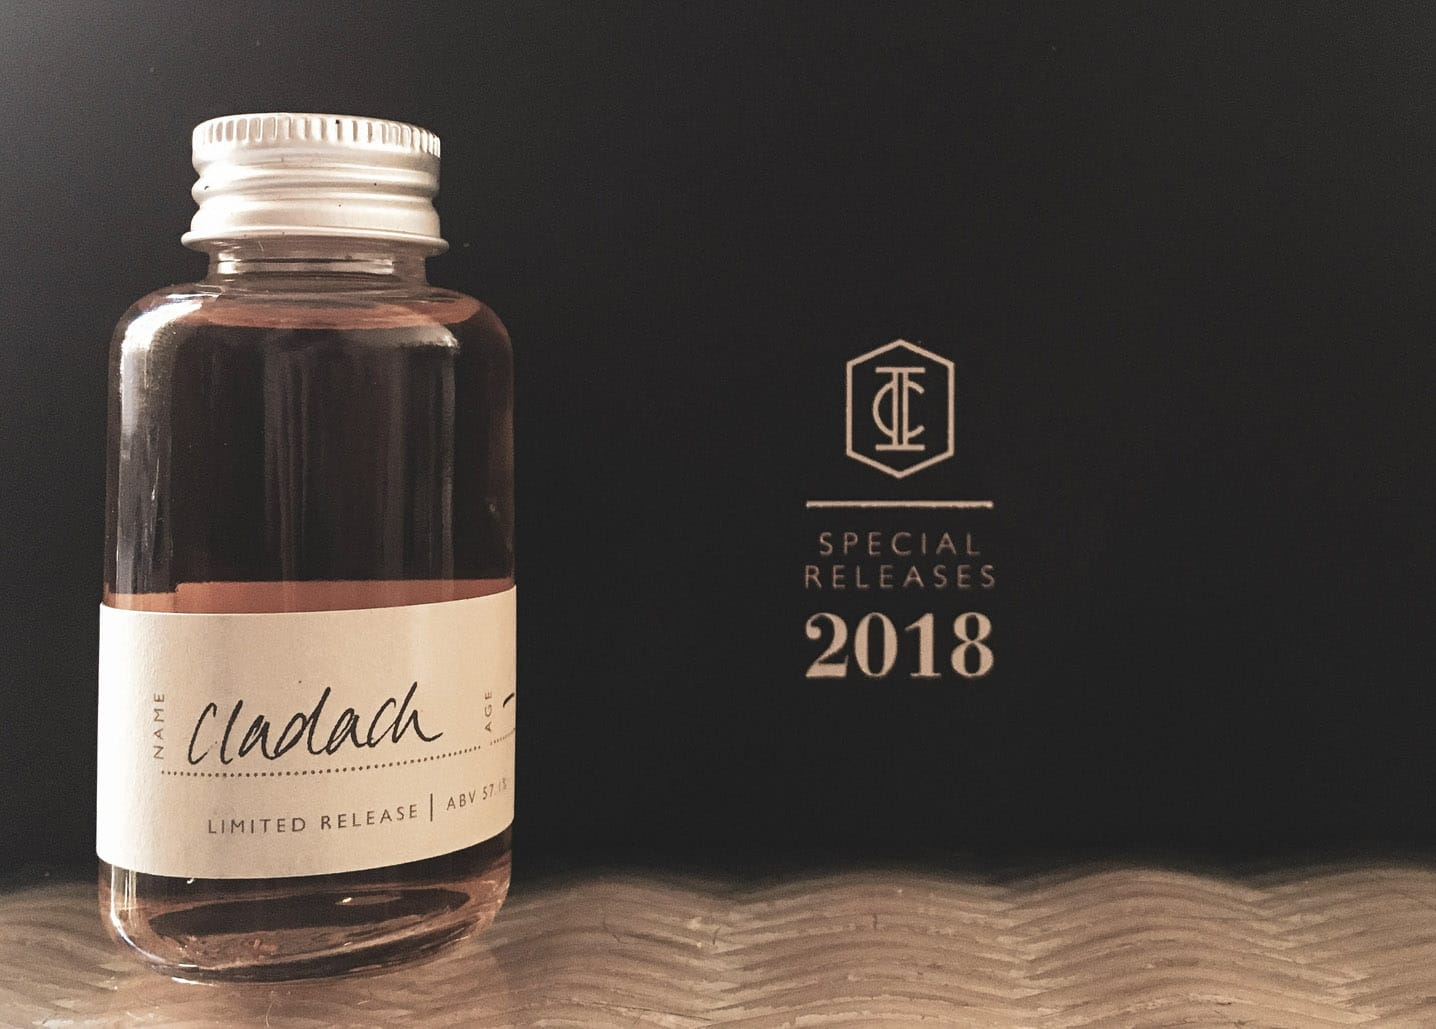 Cladach Diageo Special Releases 2018 - Todo Whisky